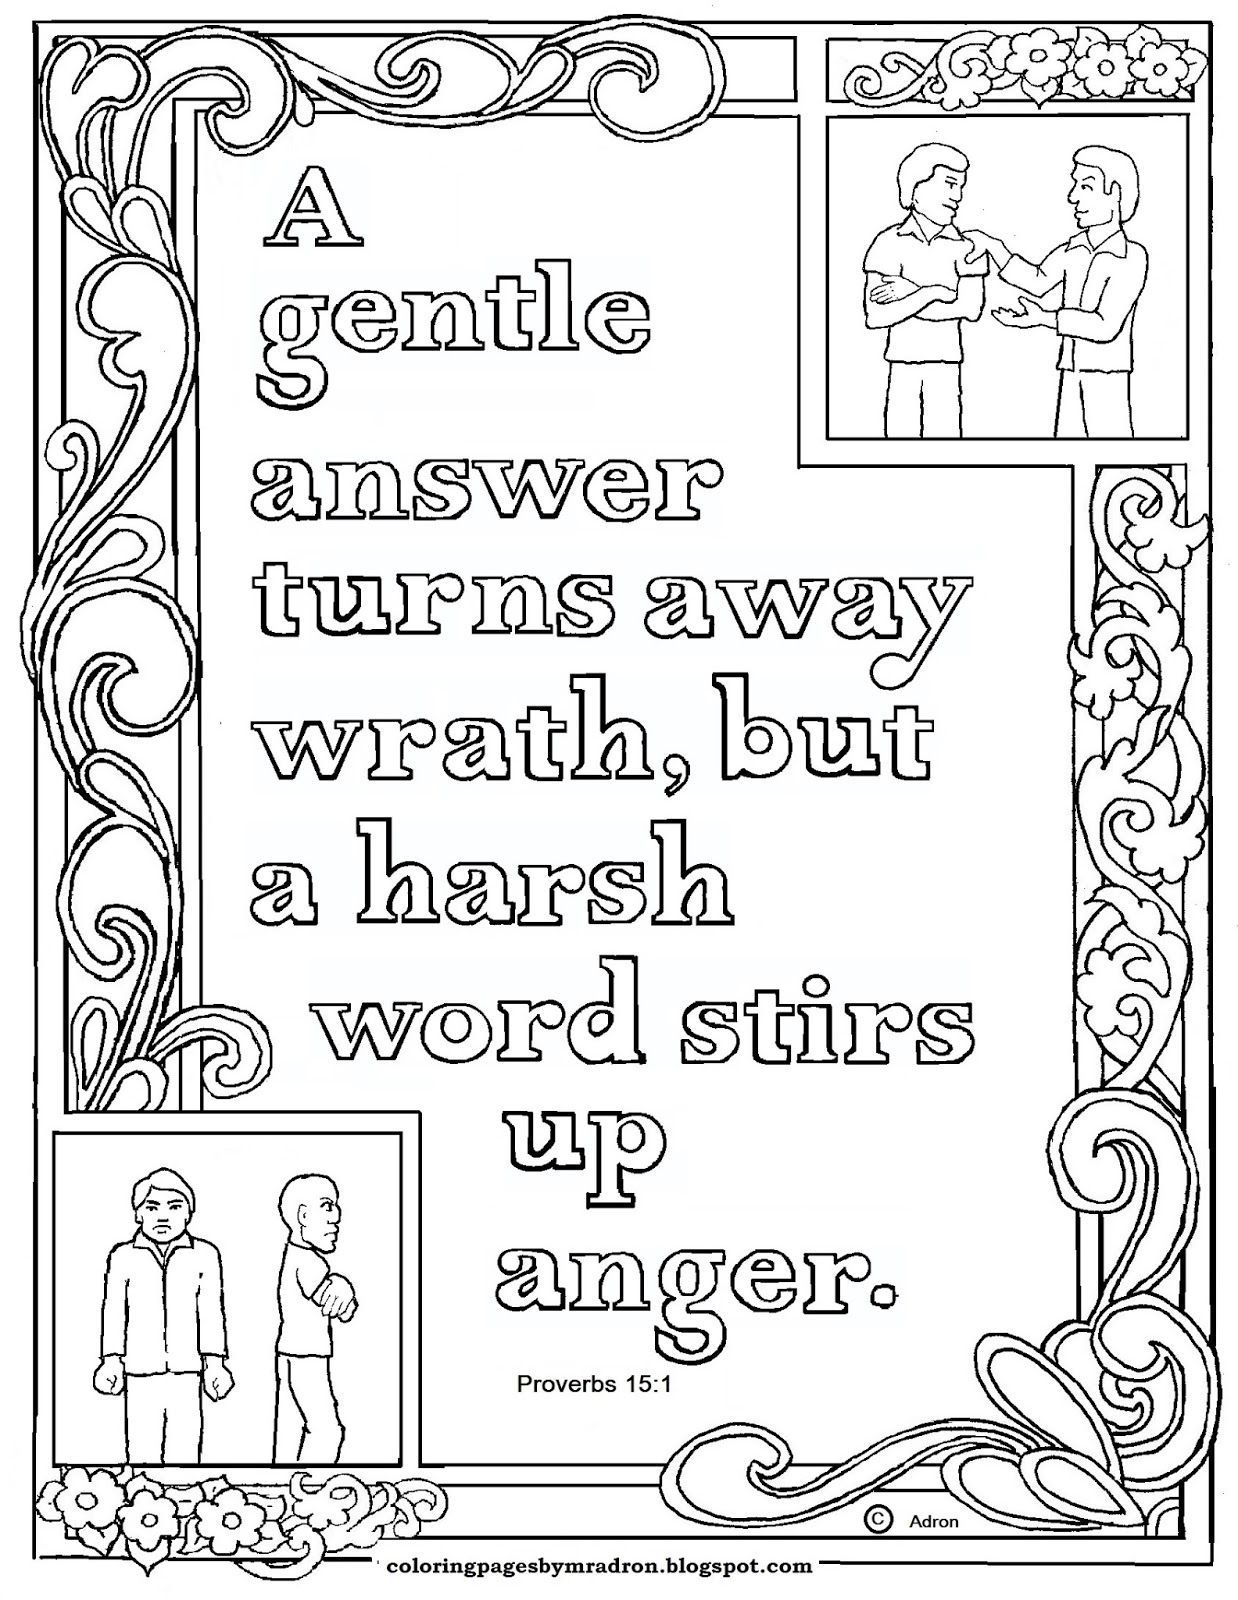 Proverbs 151 Print And Color Page A Gentle Answer Turns Away Wrath